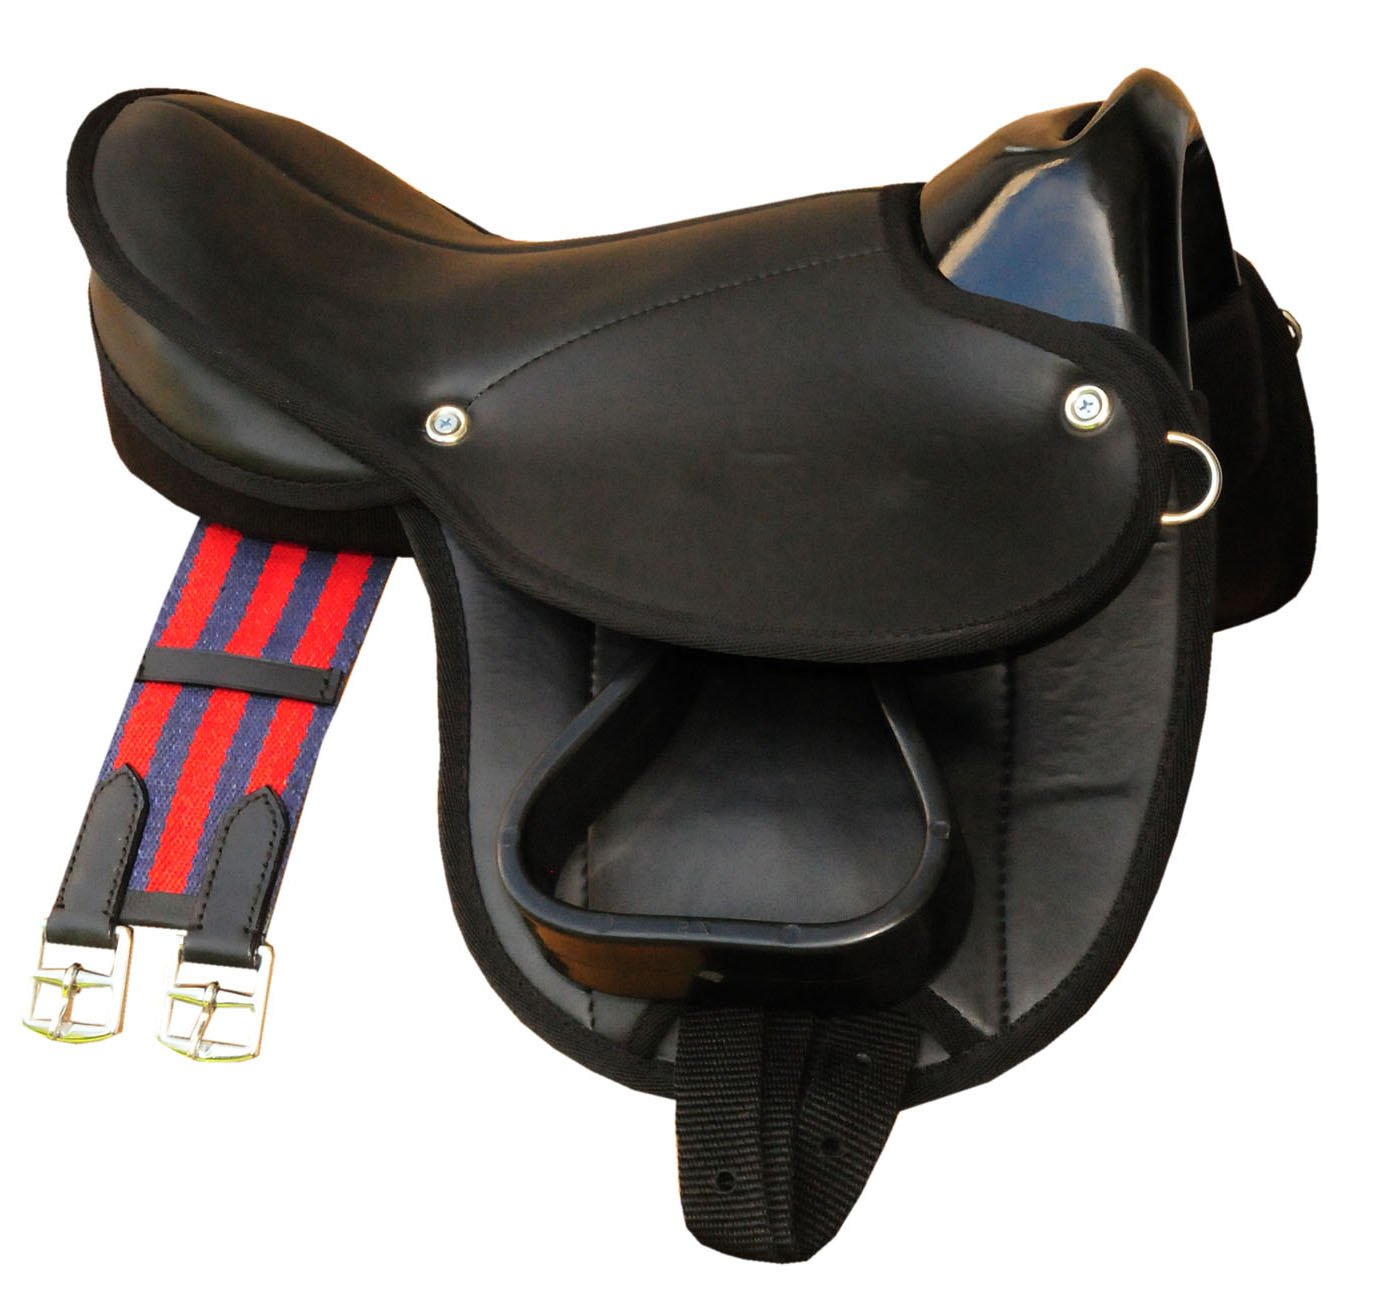 Little Billy Pony Shetland saddle, complete set also for wooden horses, colour: black, saddle set for pony or Shetland pony or wooden horses Reitsport Amesbichler